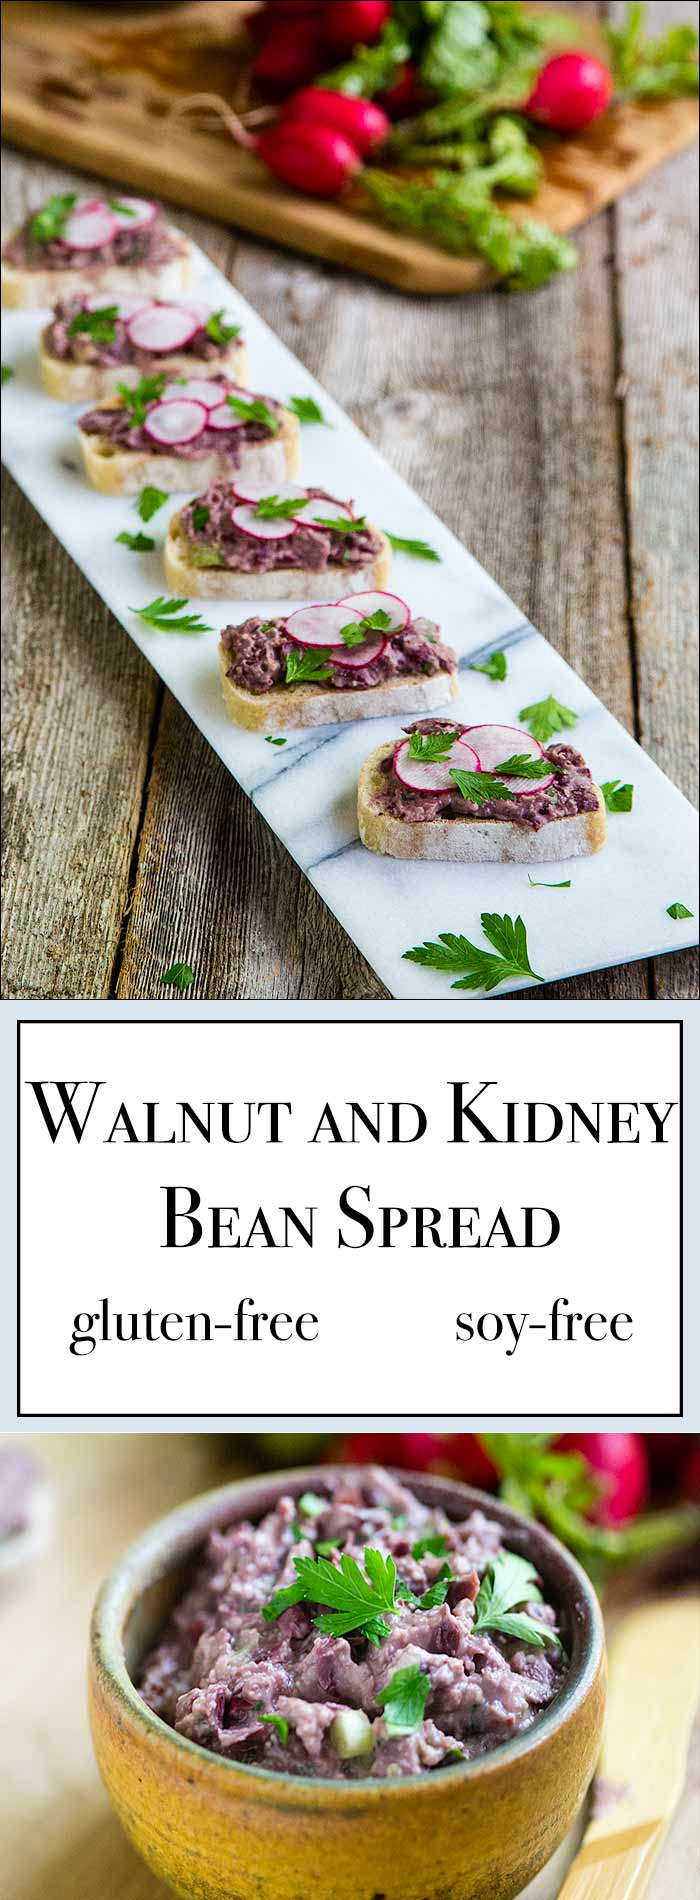 This tangy vegan kidney bean spread tastes great stuffed into a pita or spread on bread. Load it up with lots of fresh veggies for a great sandwich.